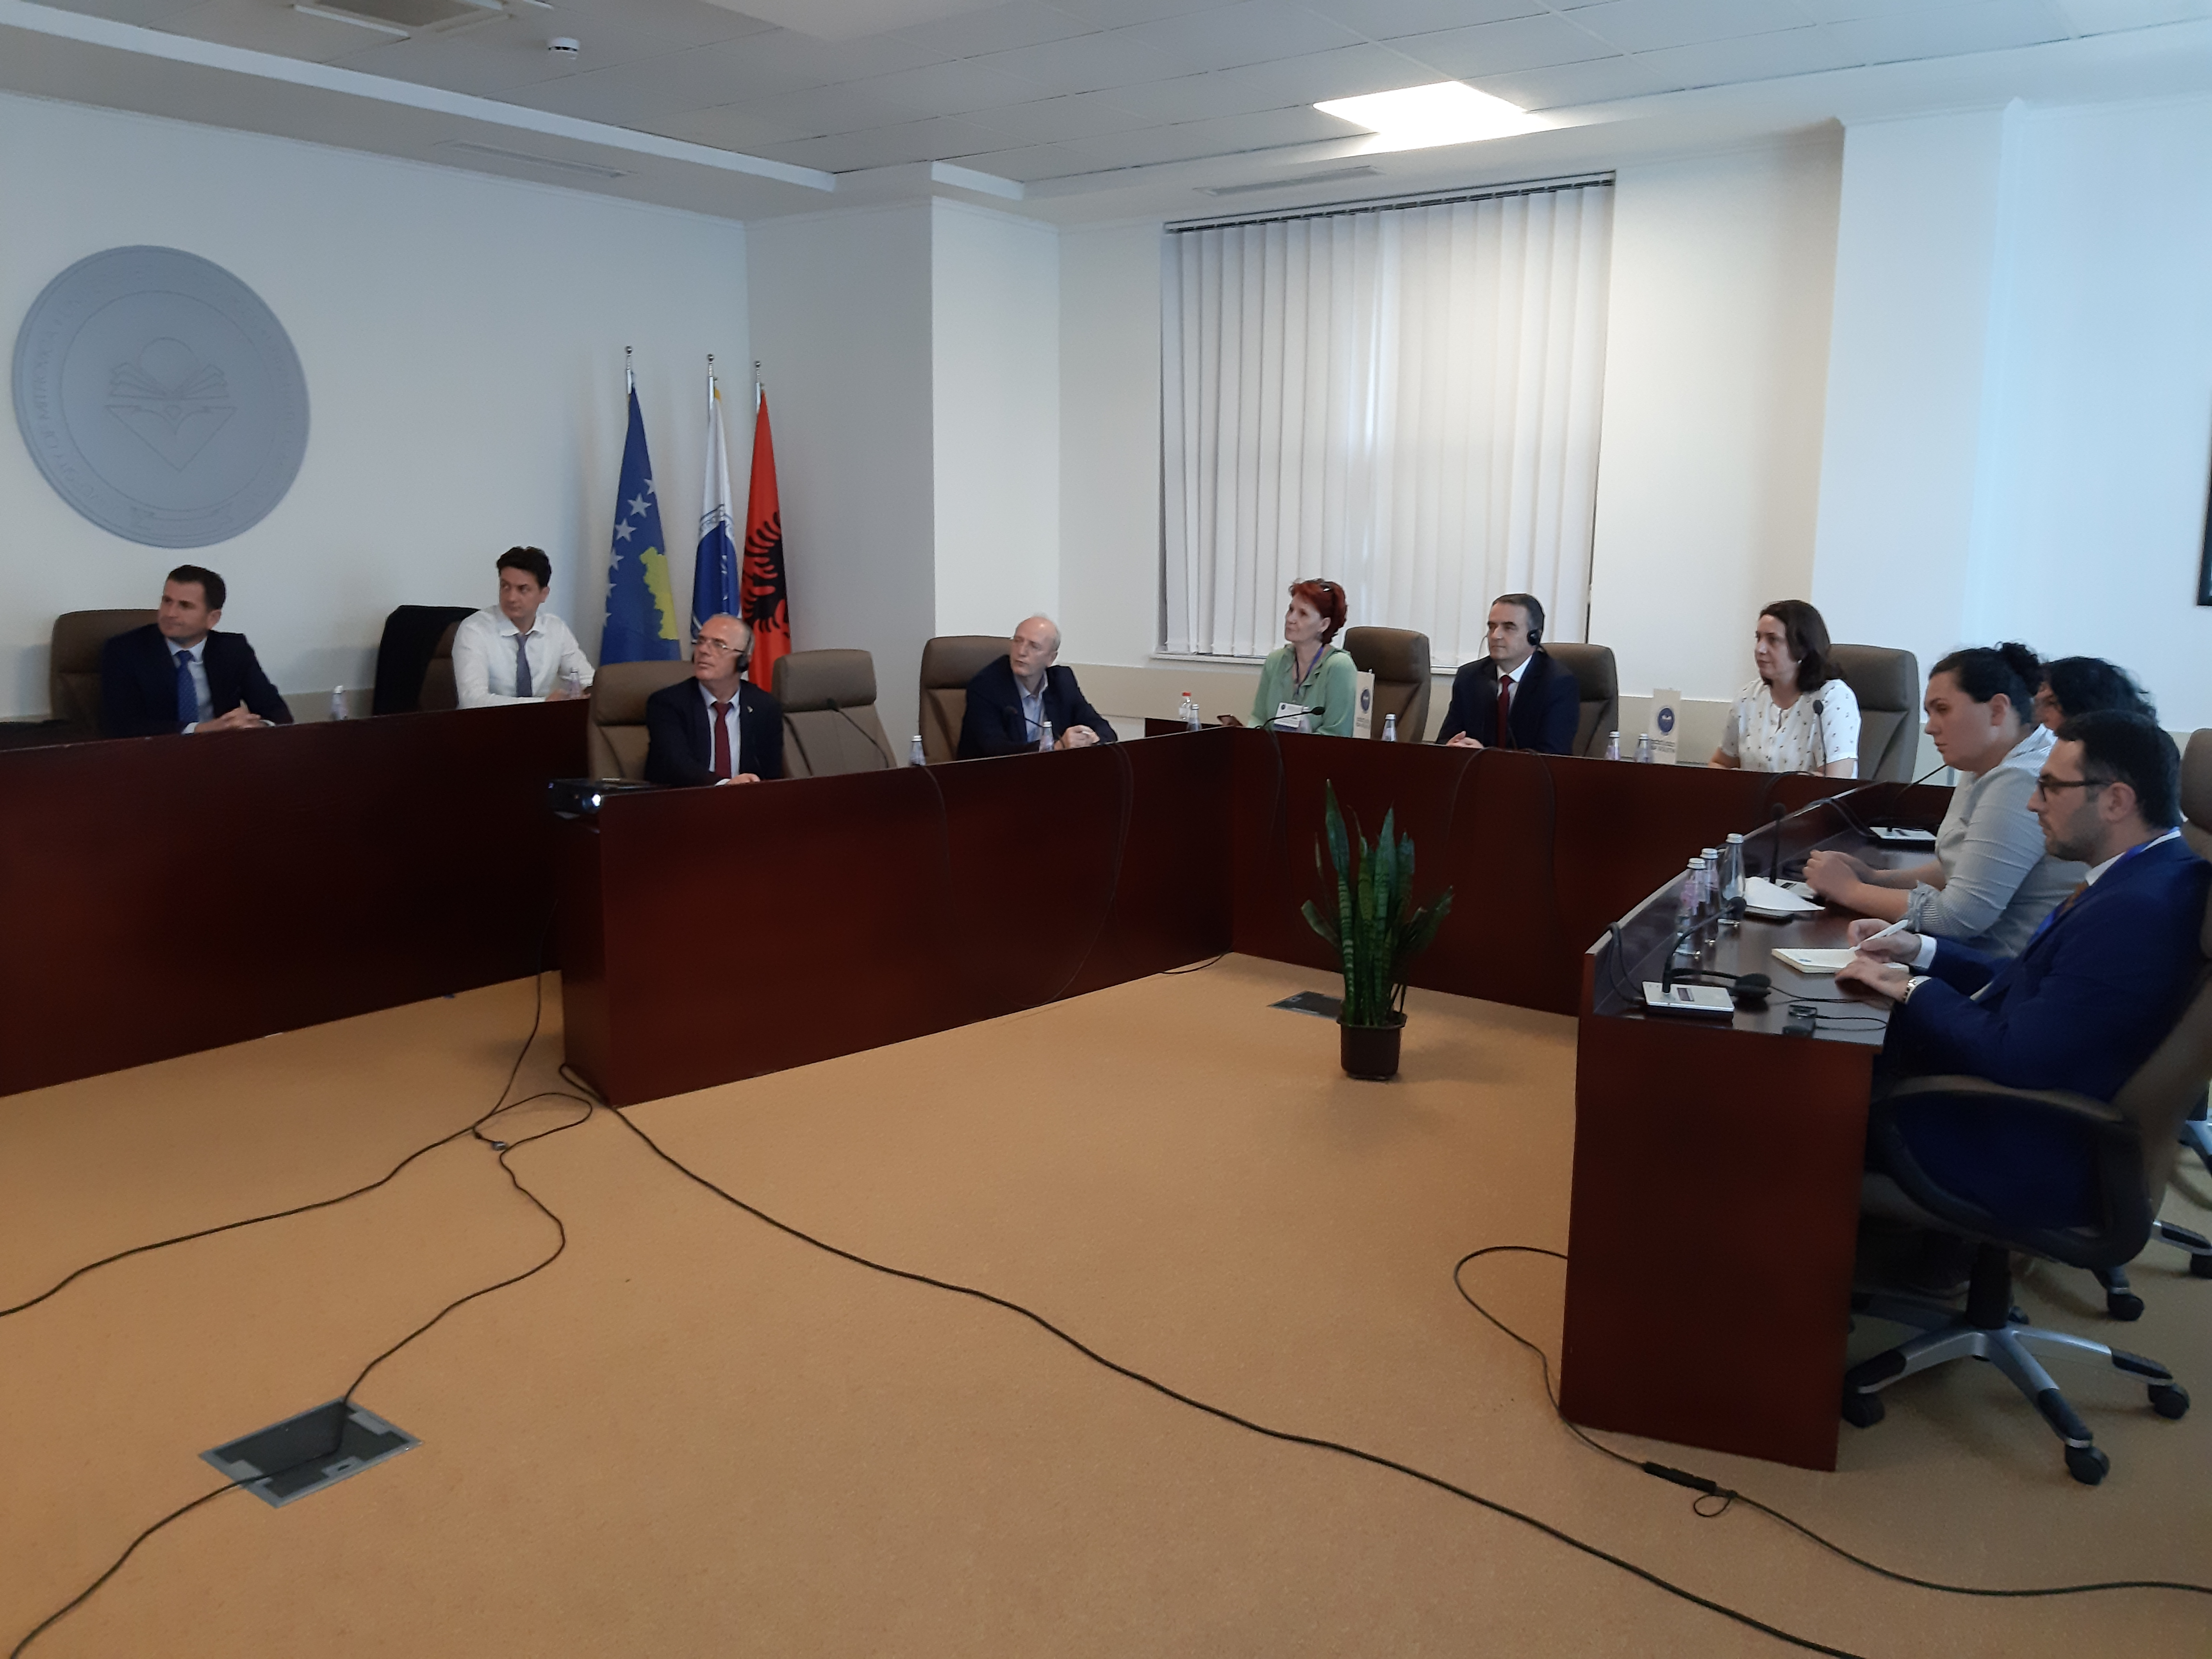 Meetings were held with international experts on institutional re-accreditation